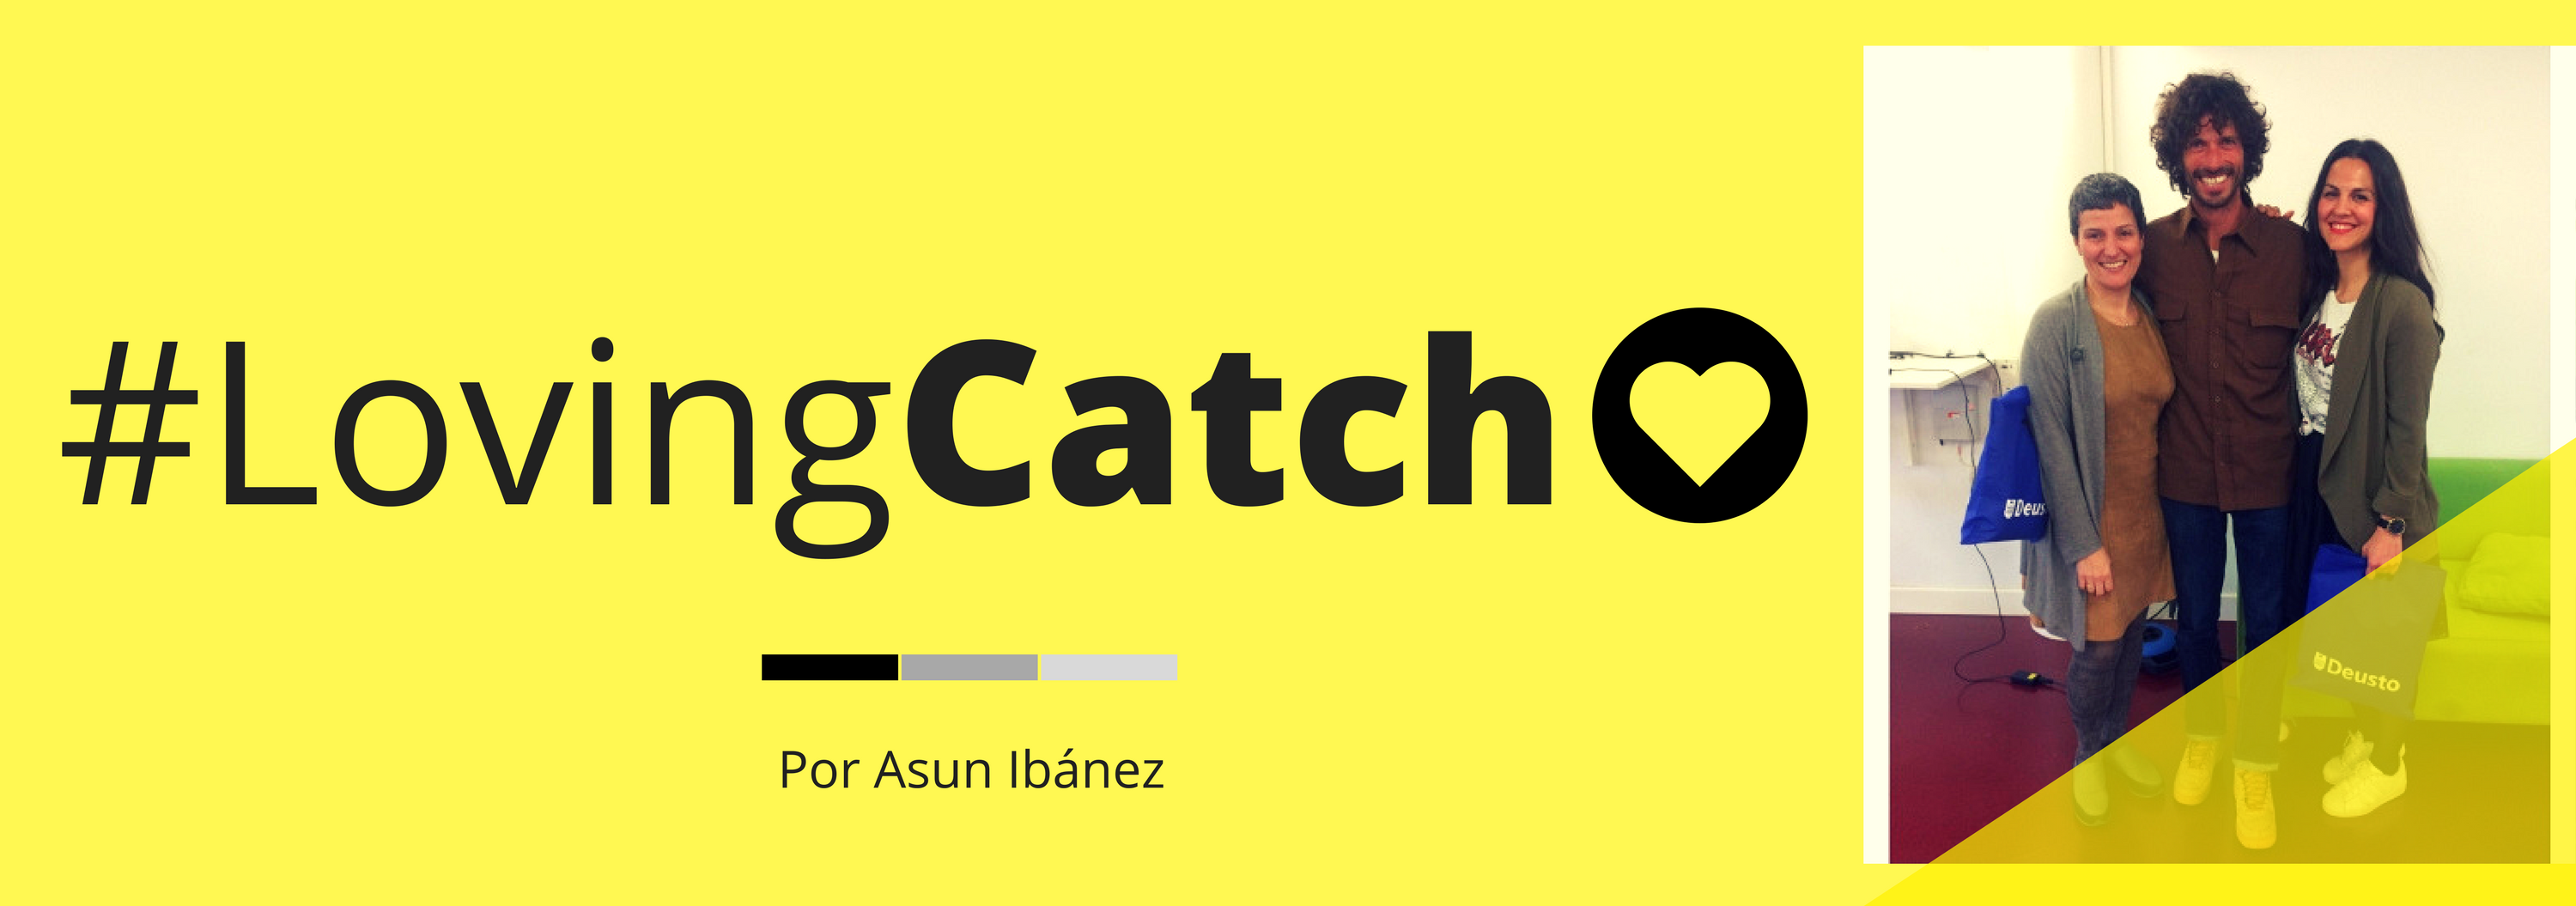 Post_Blog_EntreTuyYO_innovandis_LovingCatch#3_2017